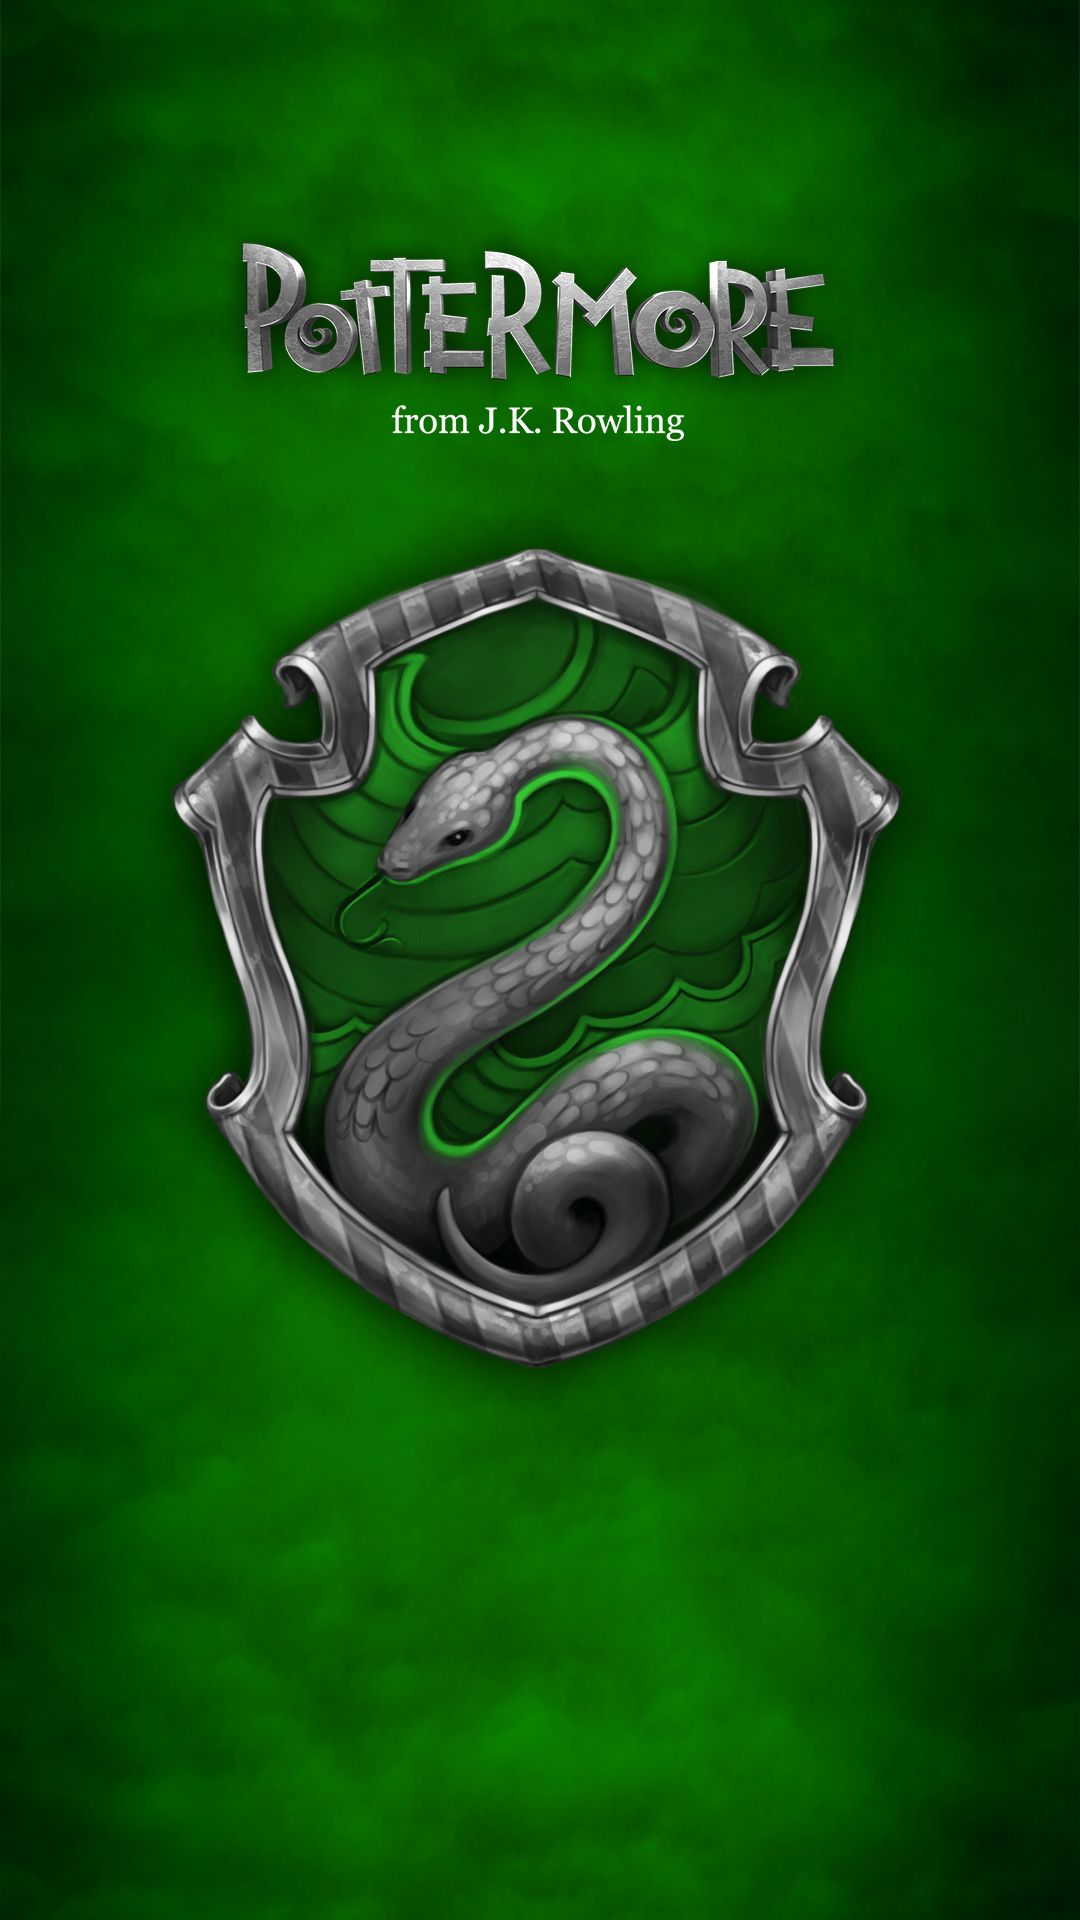 Slytherin Iphone Wallpaper Full Hd Iphone wallpapers